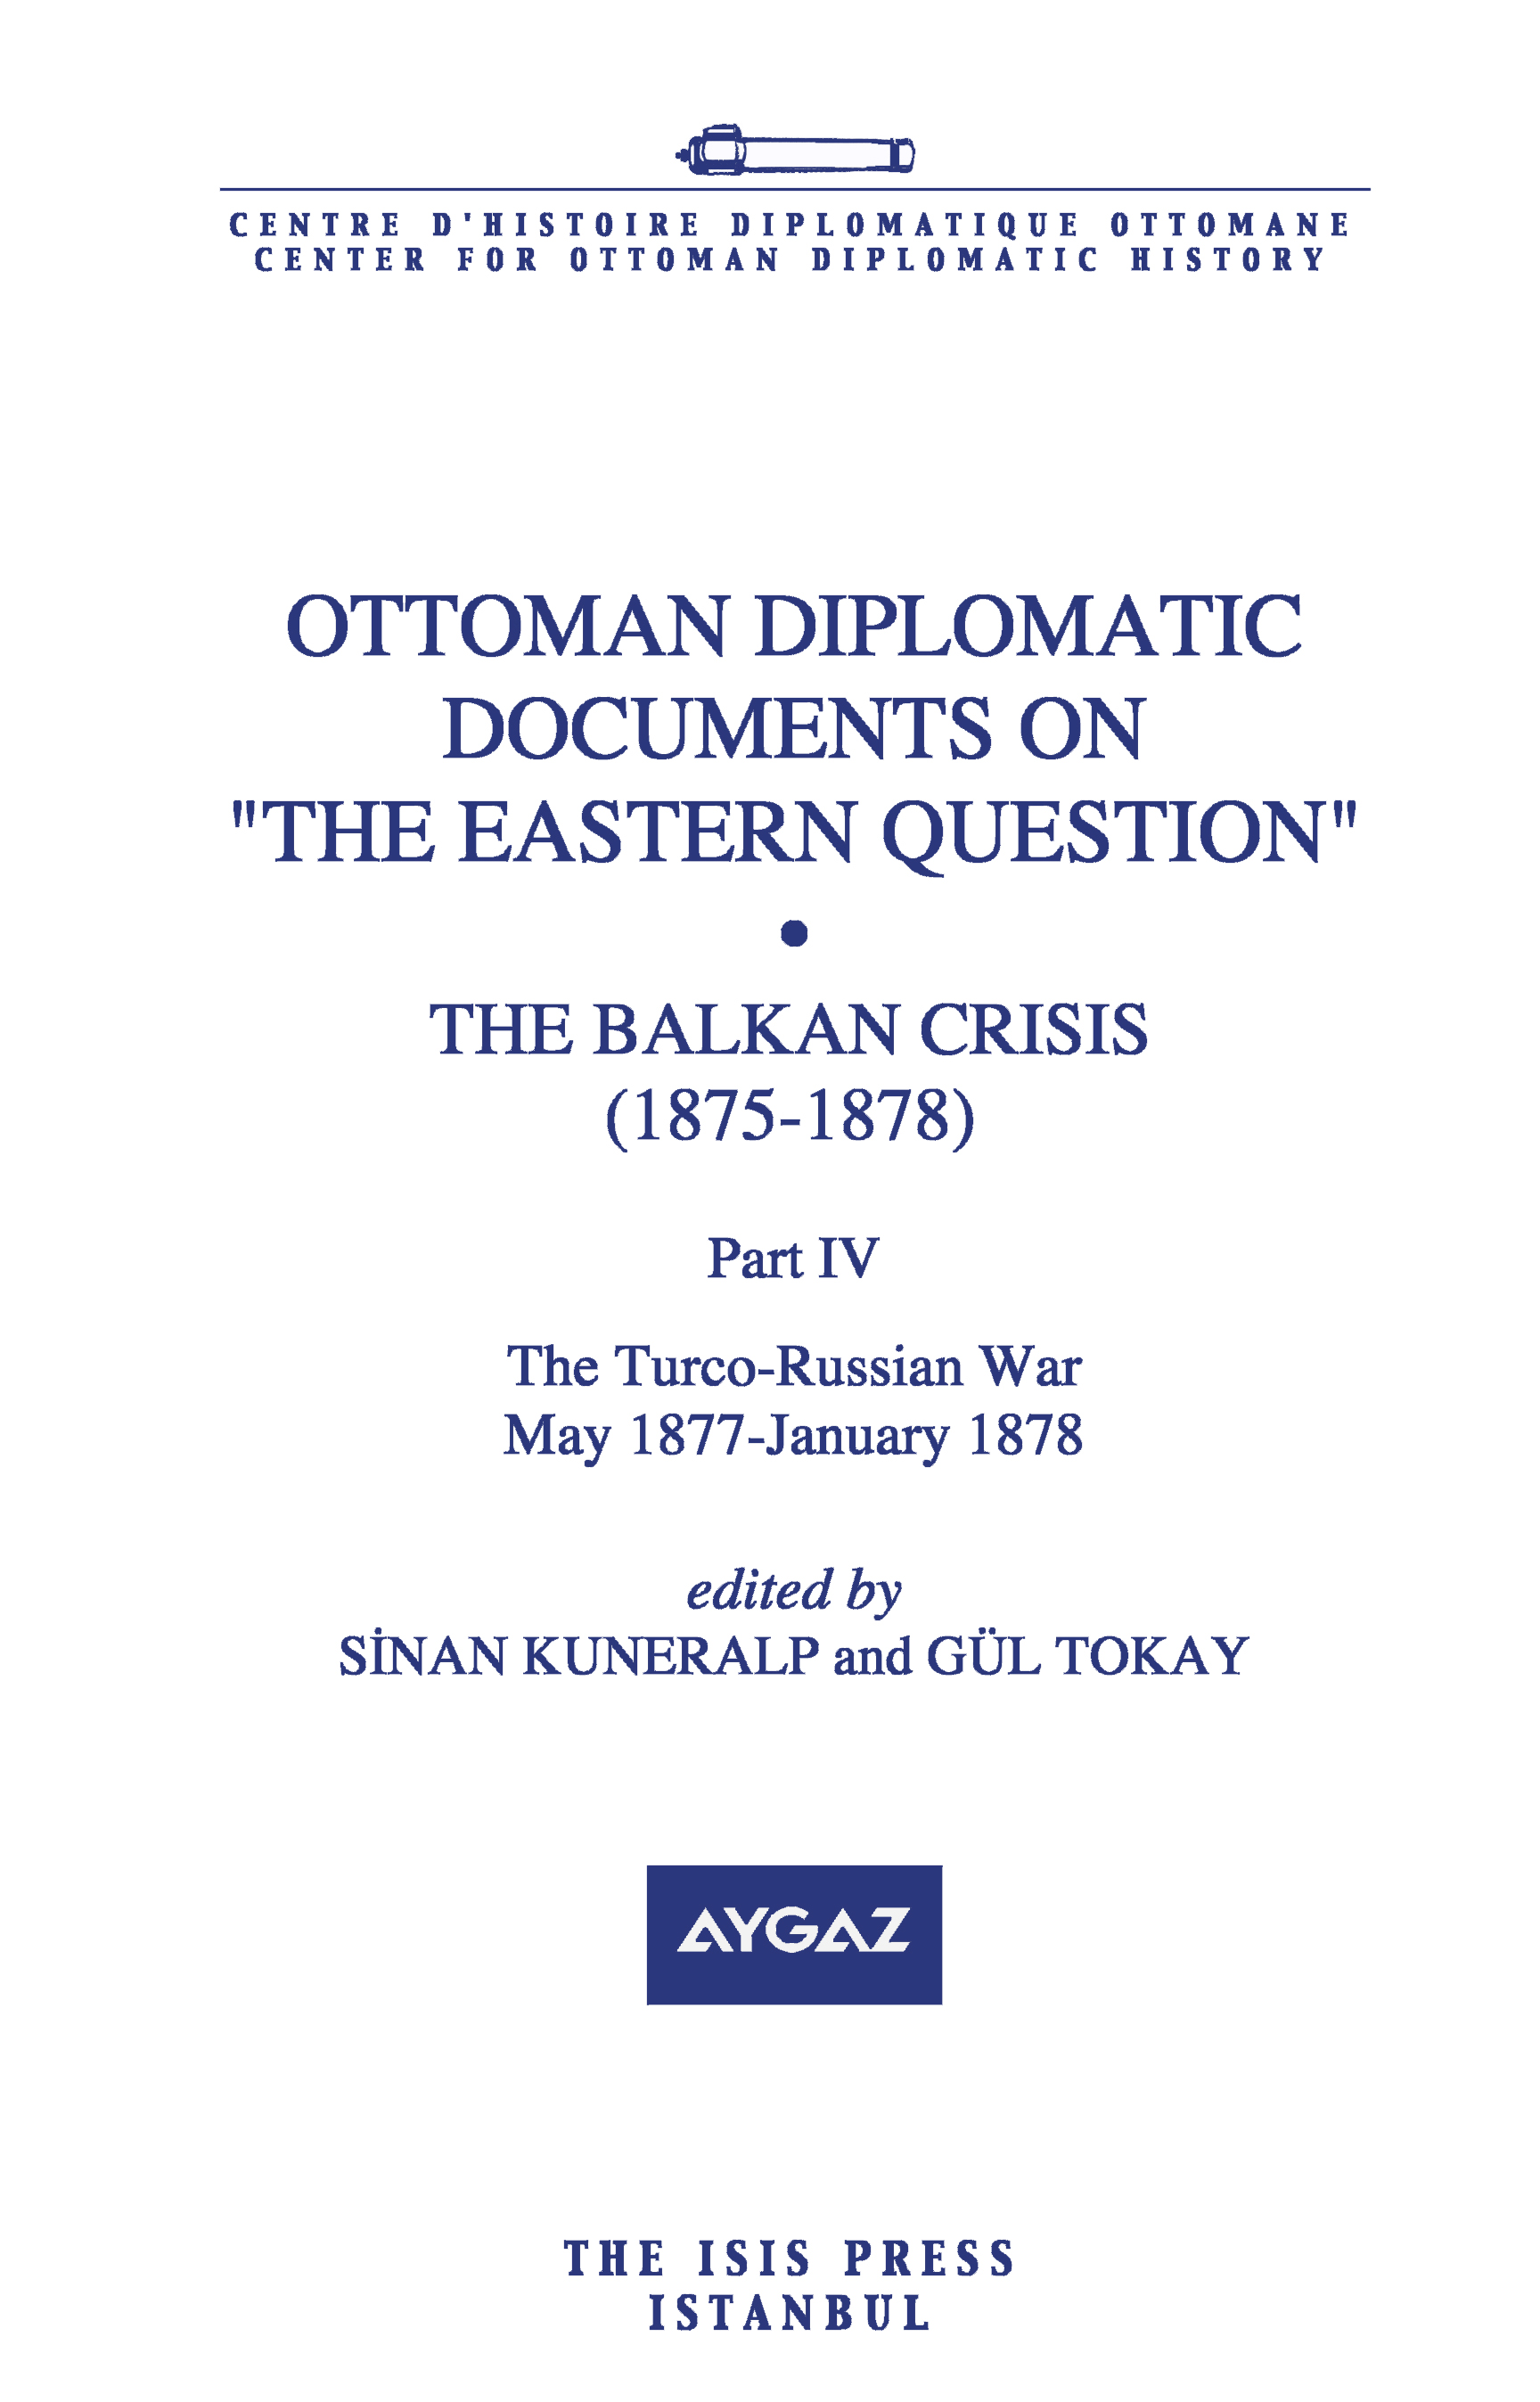 OTTOMAN DIPLOMATIC DOCUMENTS ON THE EASTERN QUESTION X THE BALKAN CRISIS 1875-1878 Part four